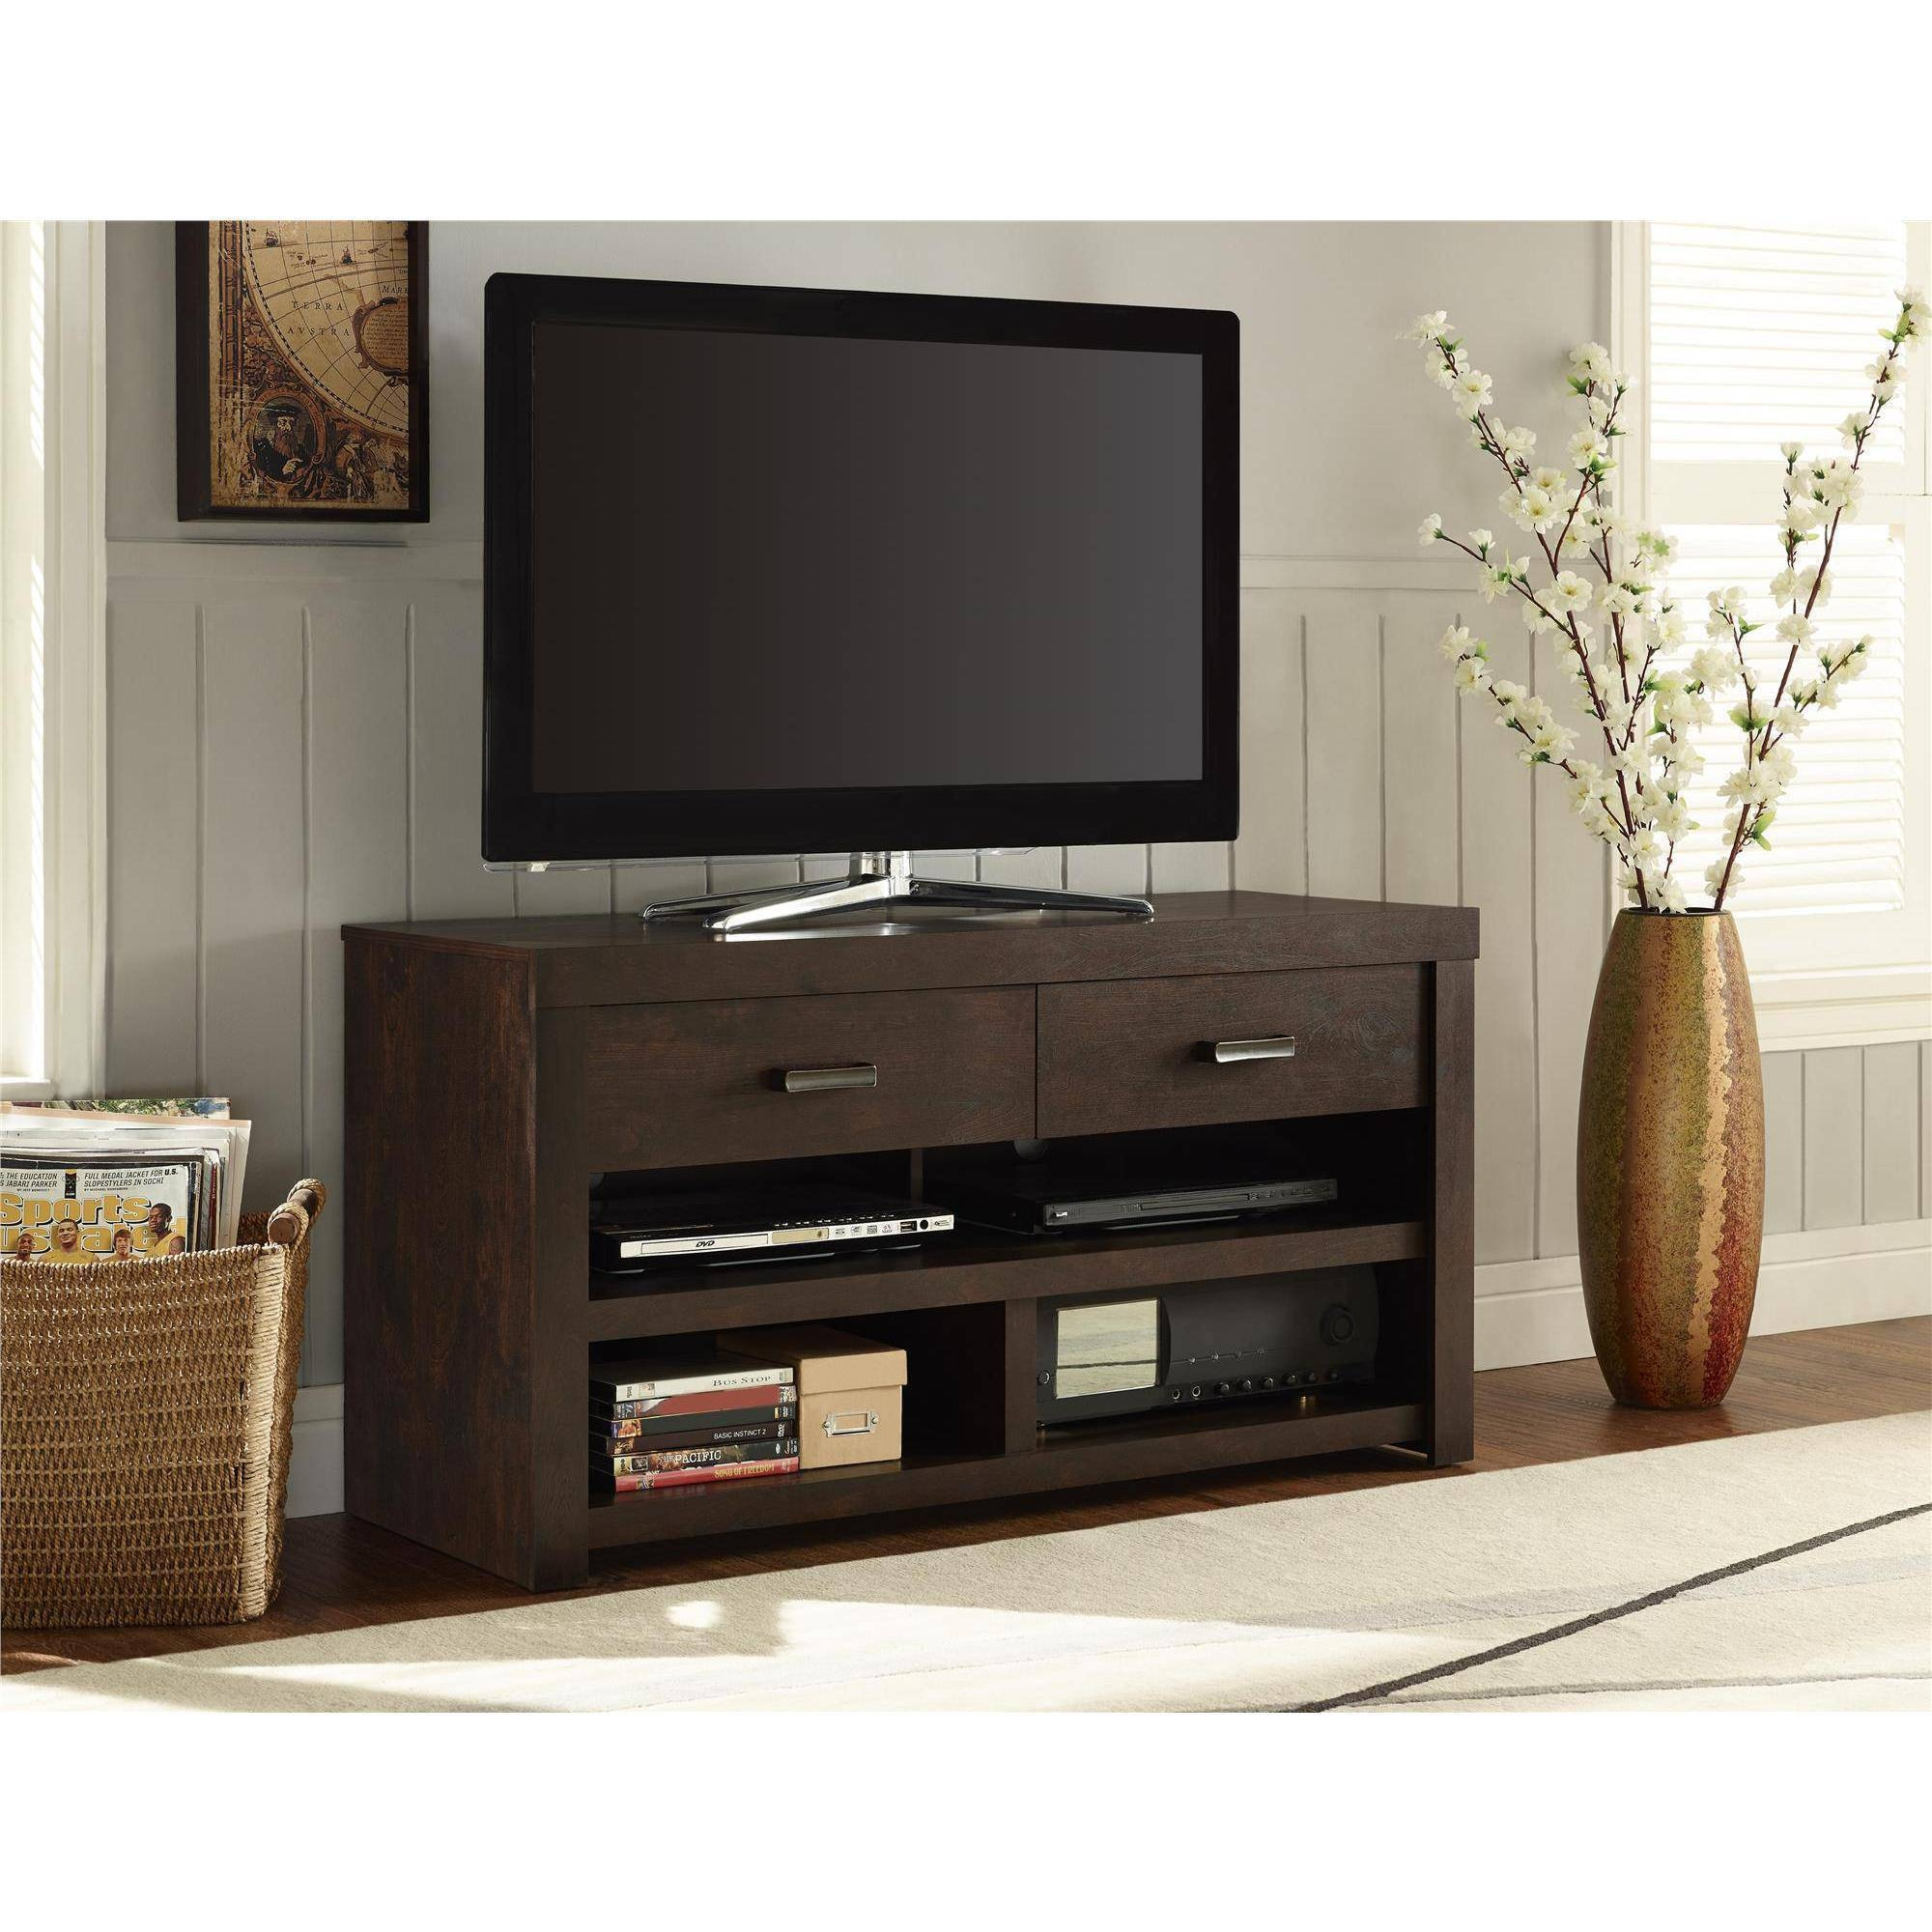 Great Dark Walnut Tv Stand 75 On Home Pictures With Dark Walnut Tv Intended For Dark Walnut Tv Stands (View 2 of 15)